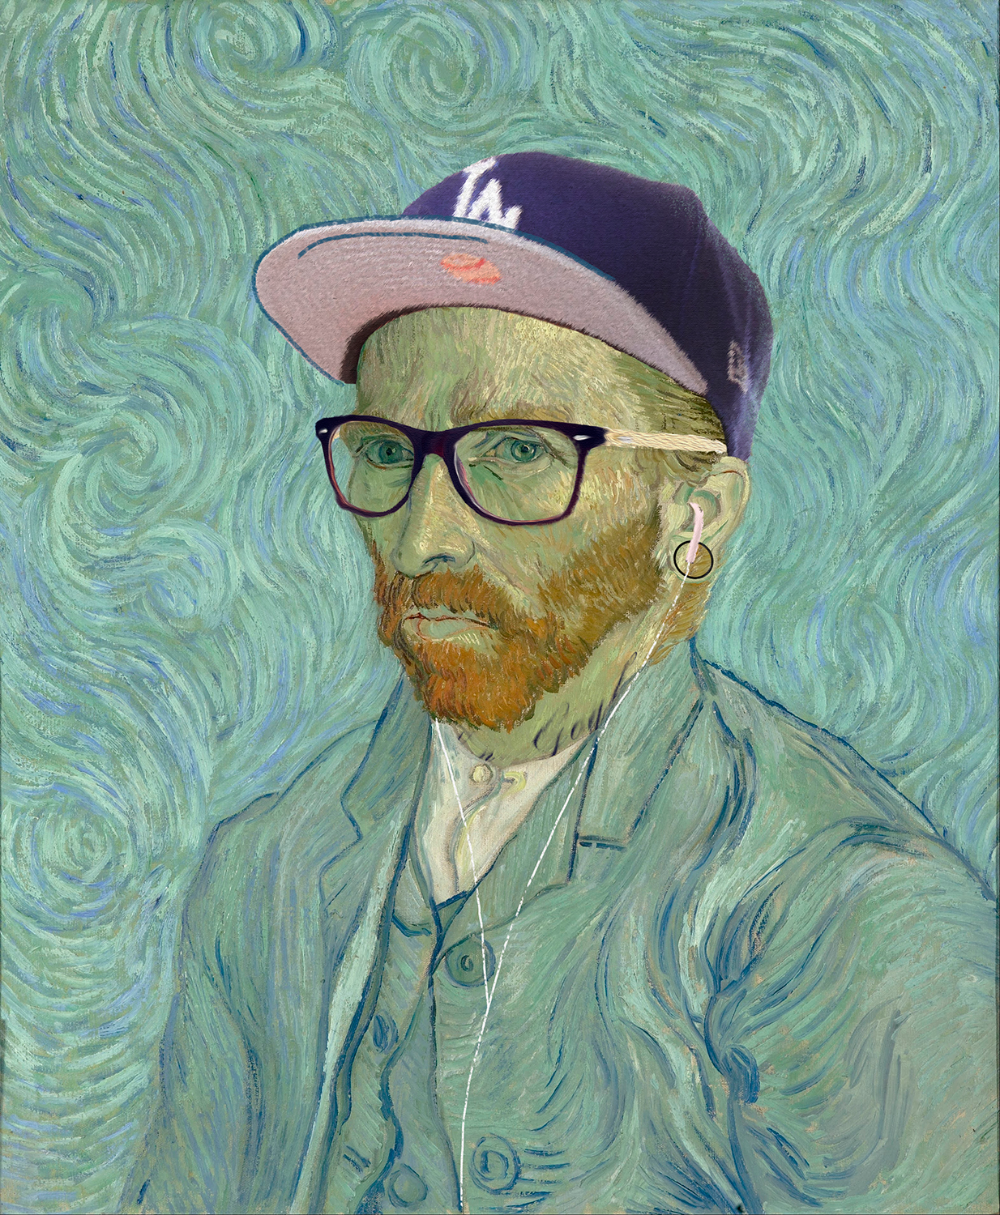 Classic Artworks Given The Hipster Look in 2020 Classic